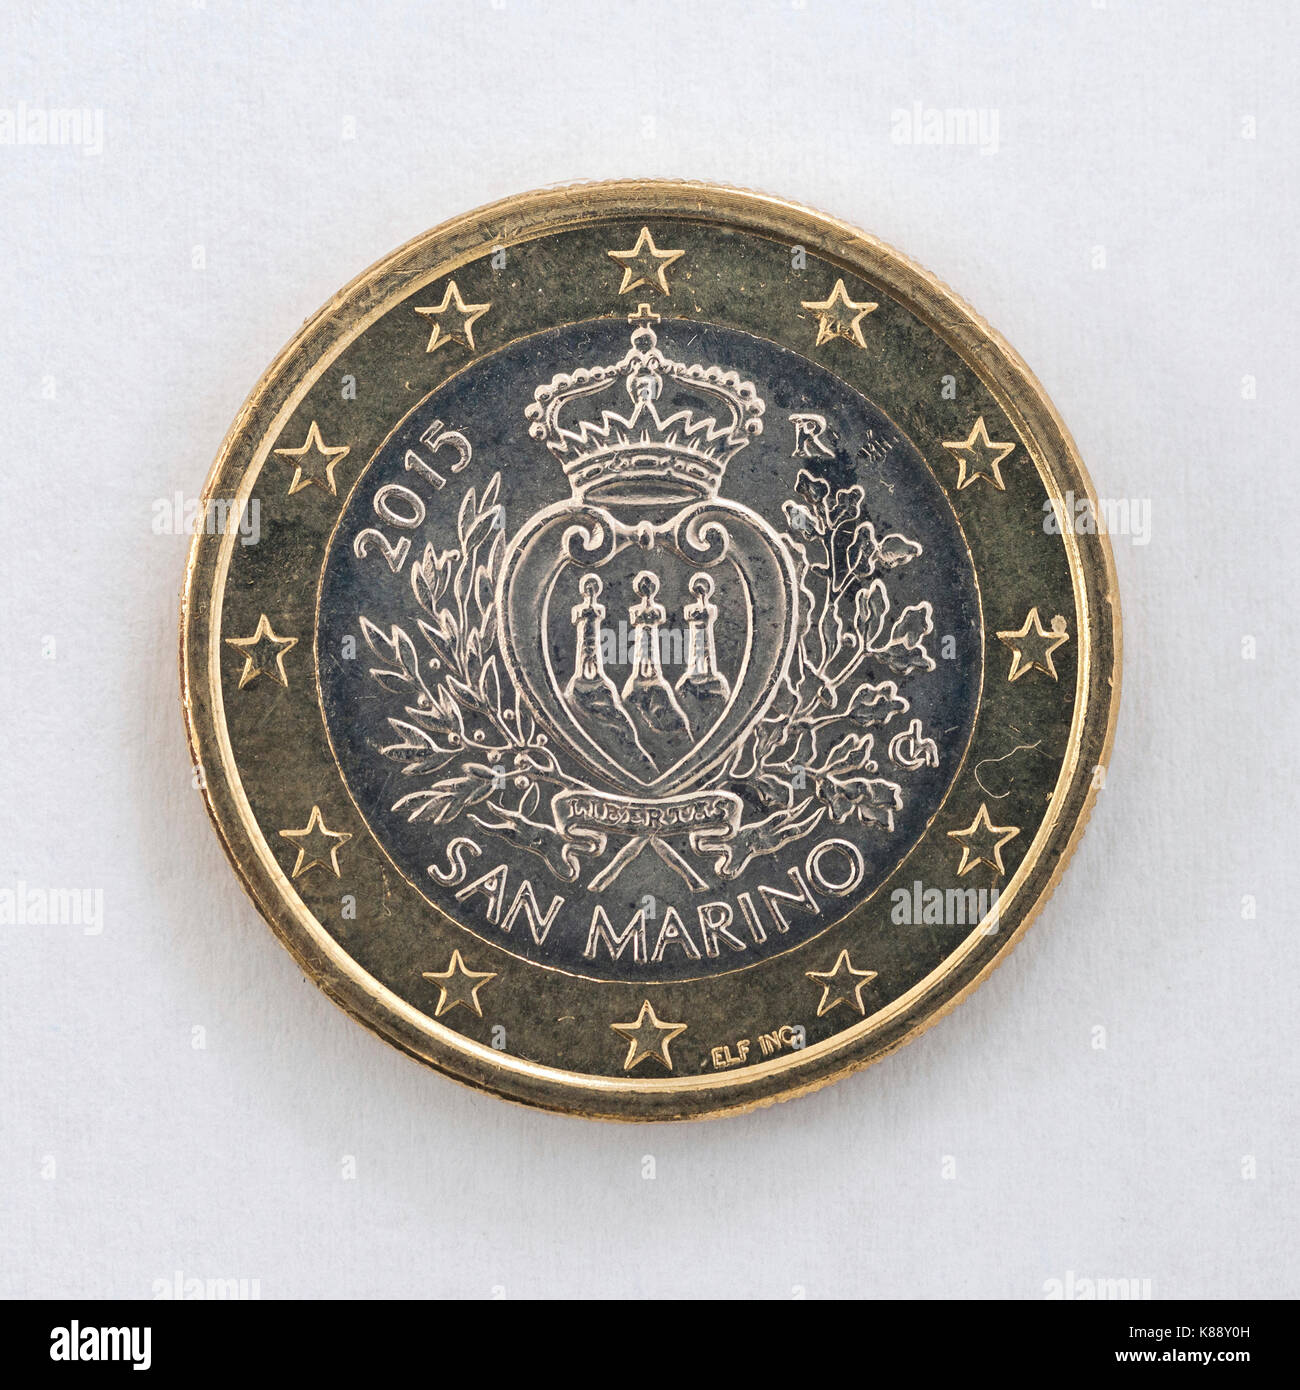 A one euro coin with the San Marino coat of arms. - Stock Image